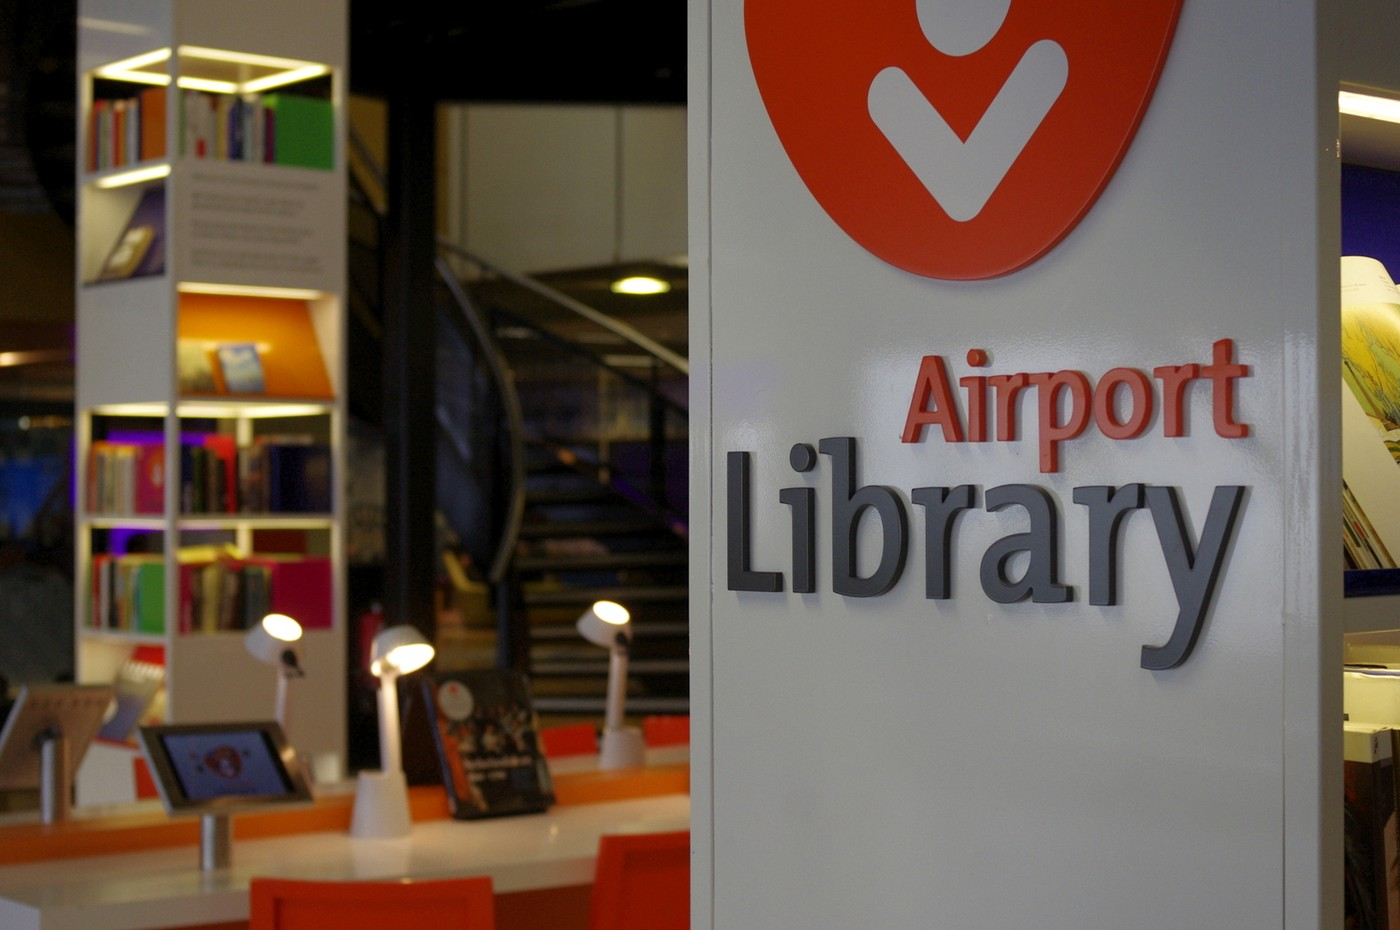 Airport Library